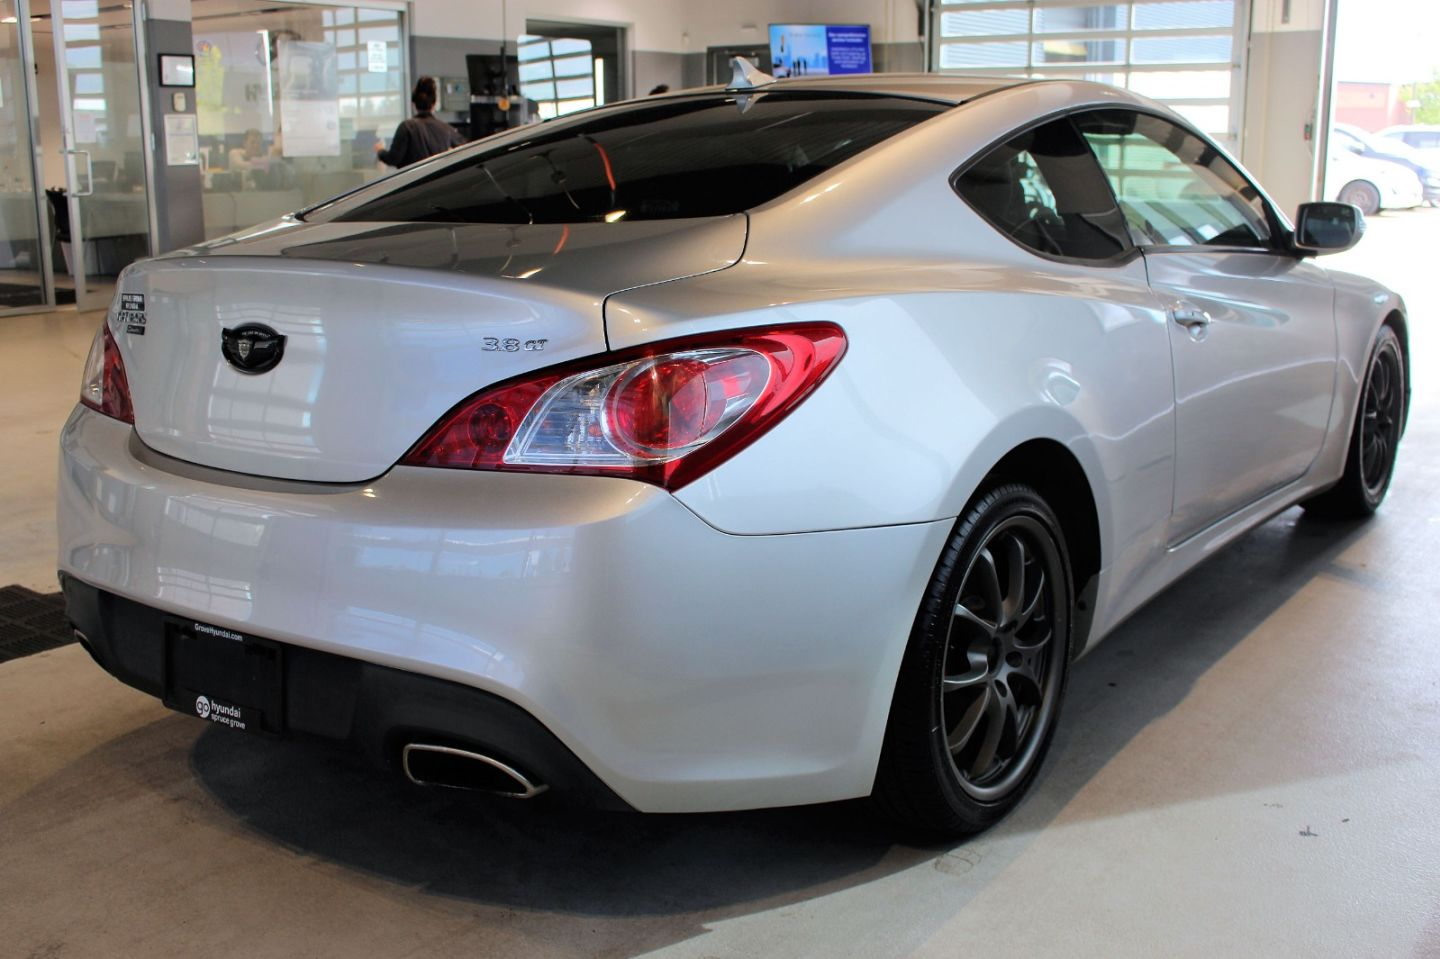 2012 Hyundai Genesis Coupe GT for sale in Spruce Grove, Alberta